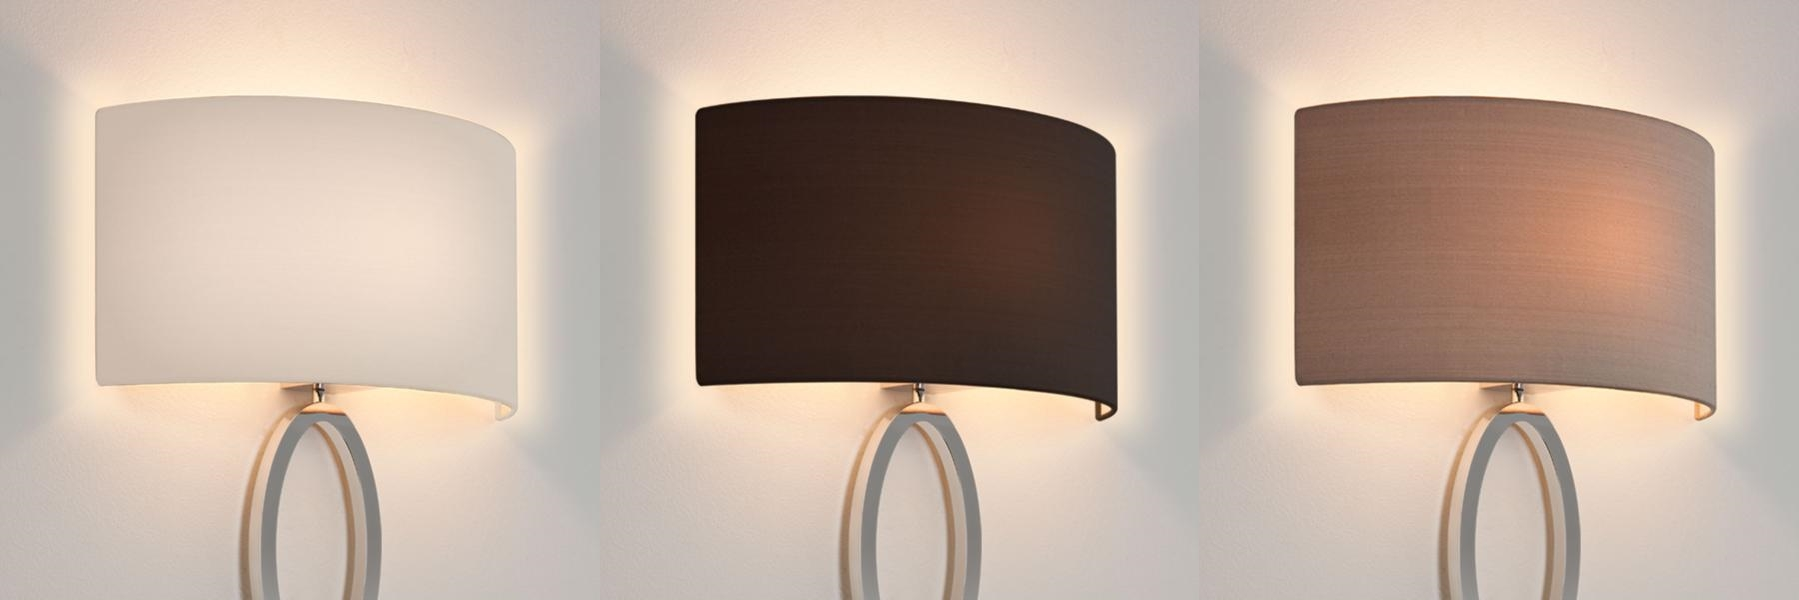 Lamp Shades Wall Lights